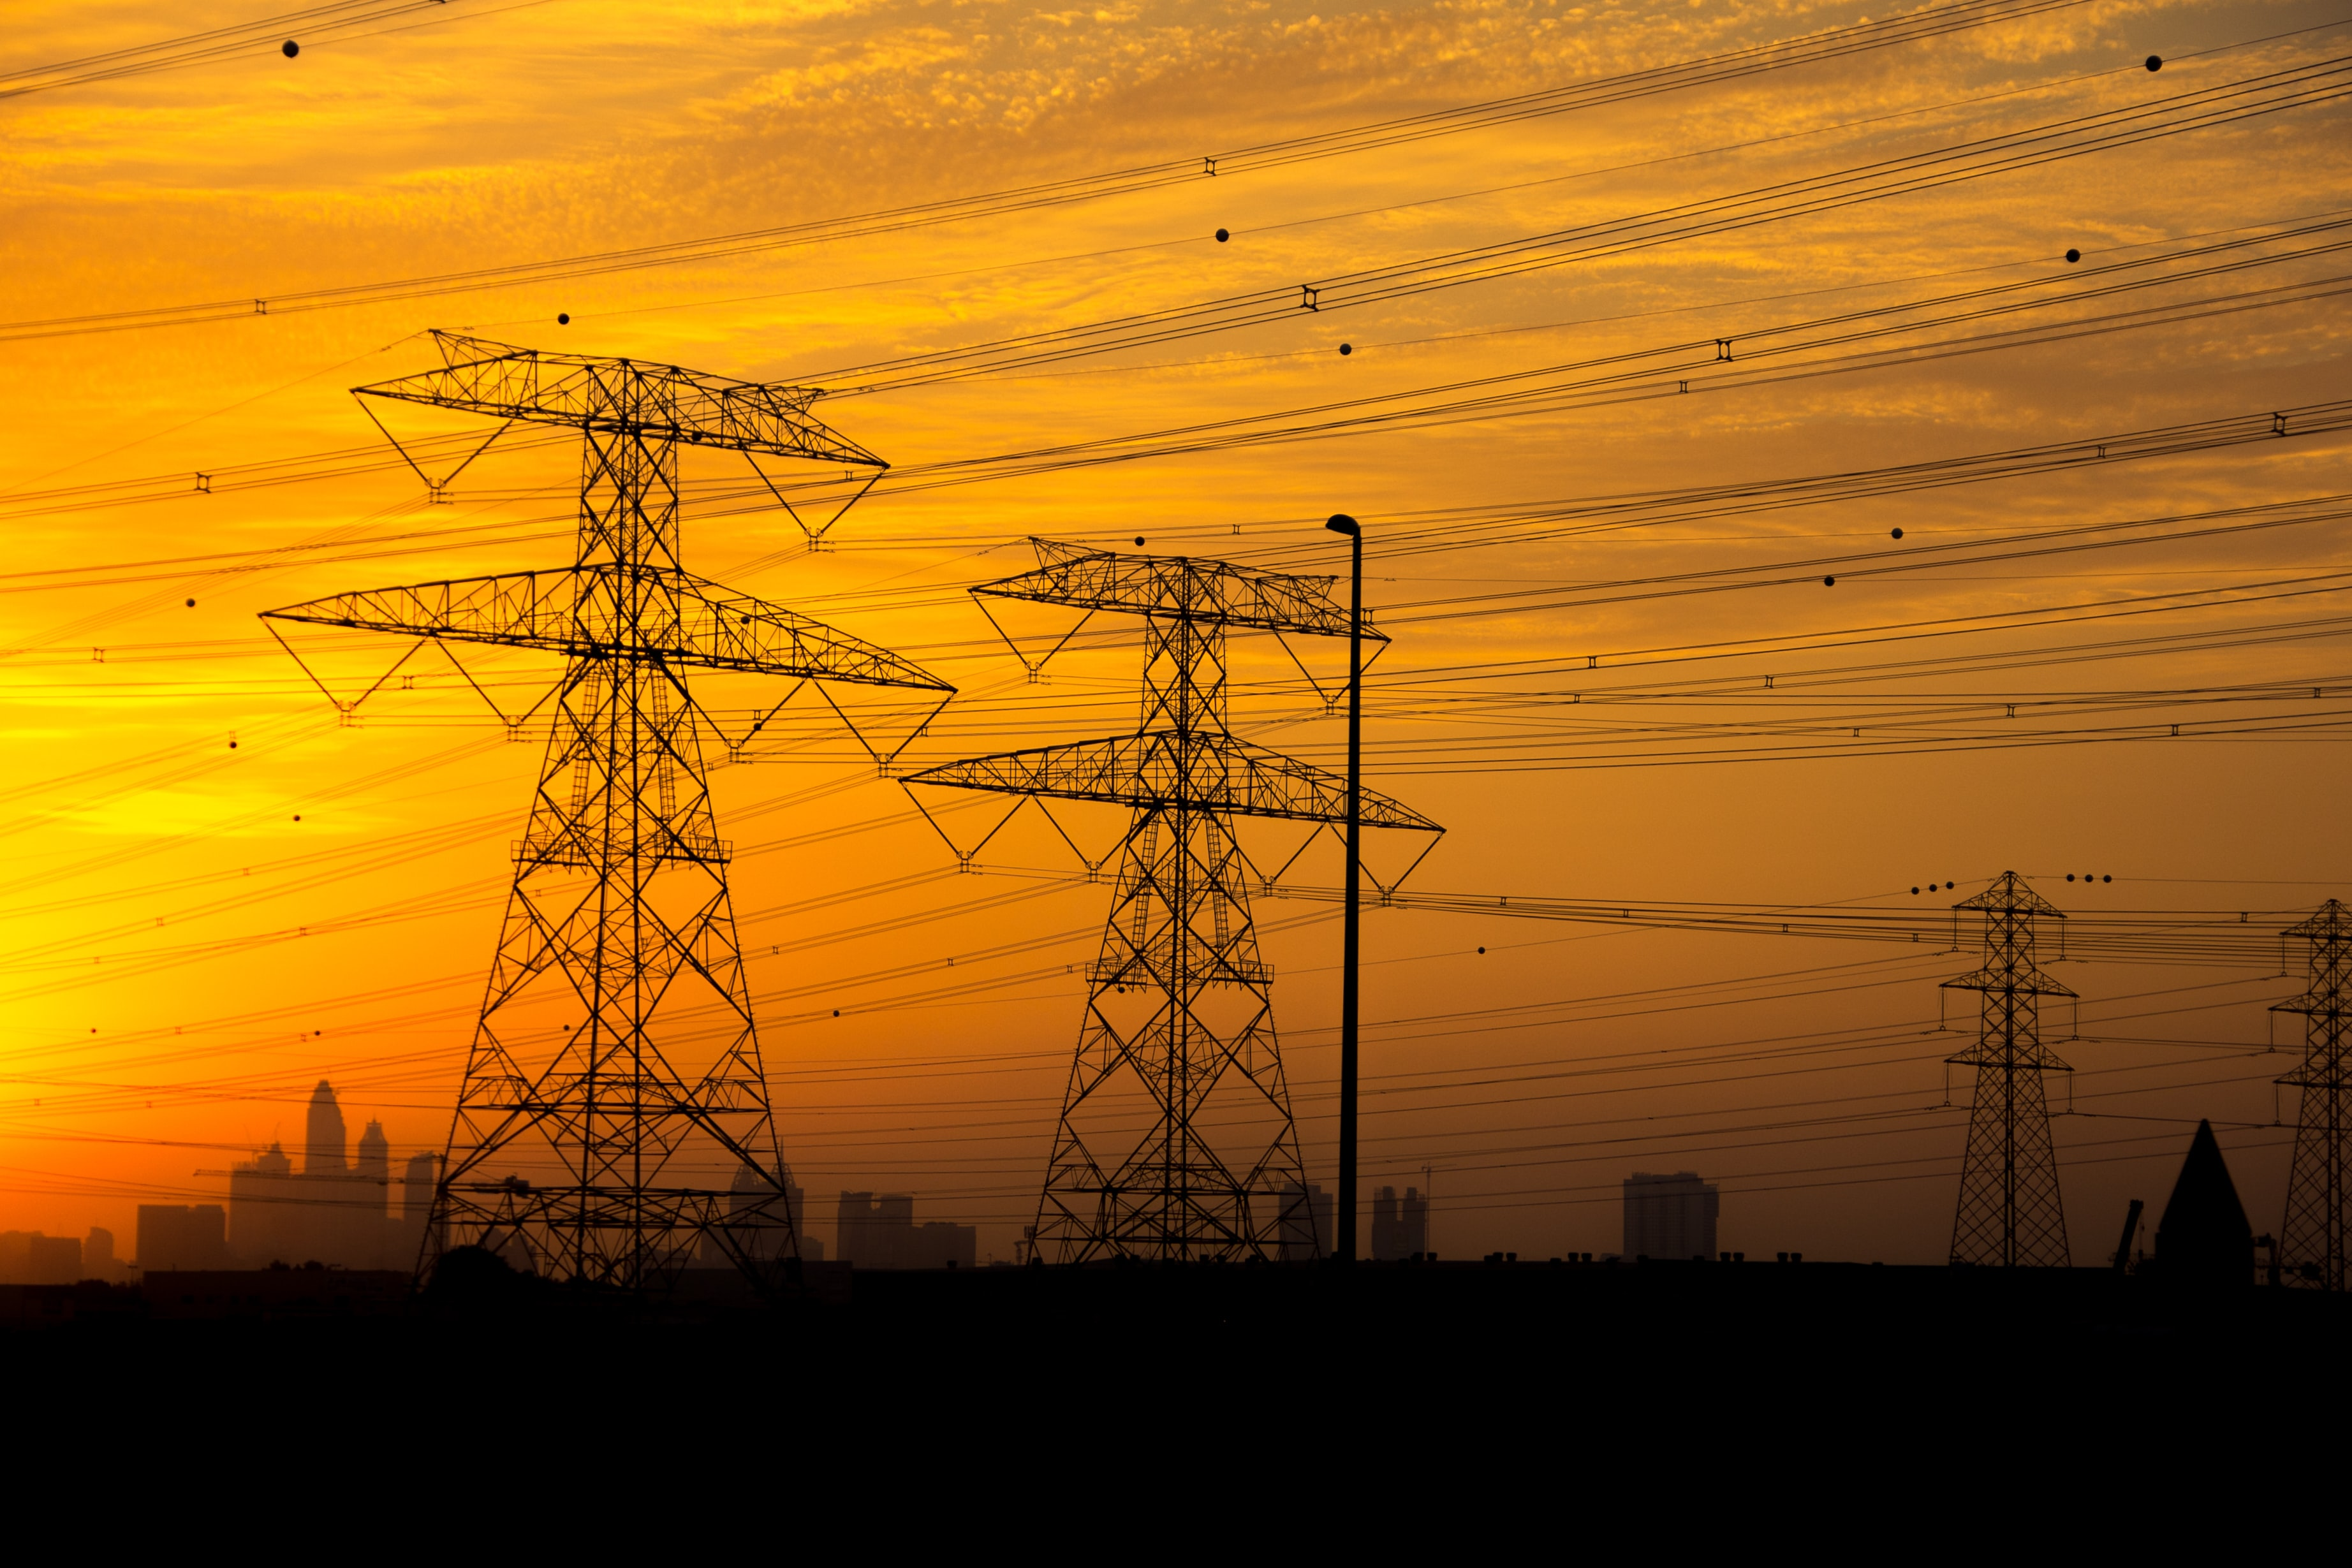 several transmission towers during golden hour